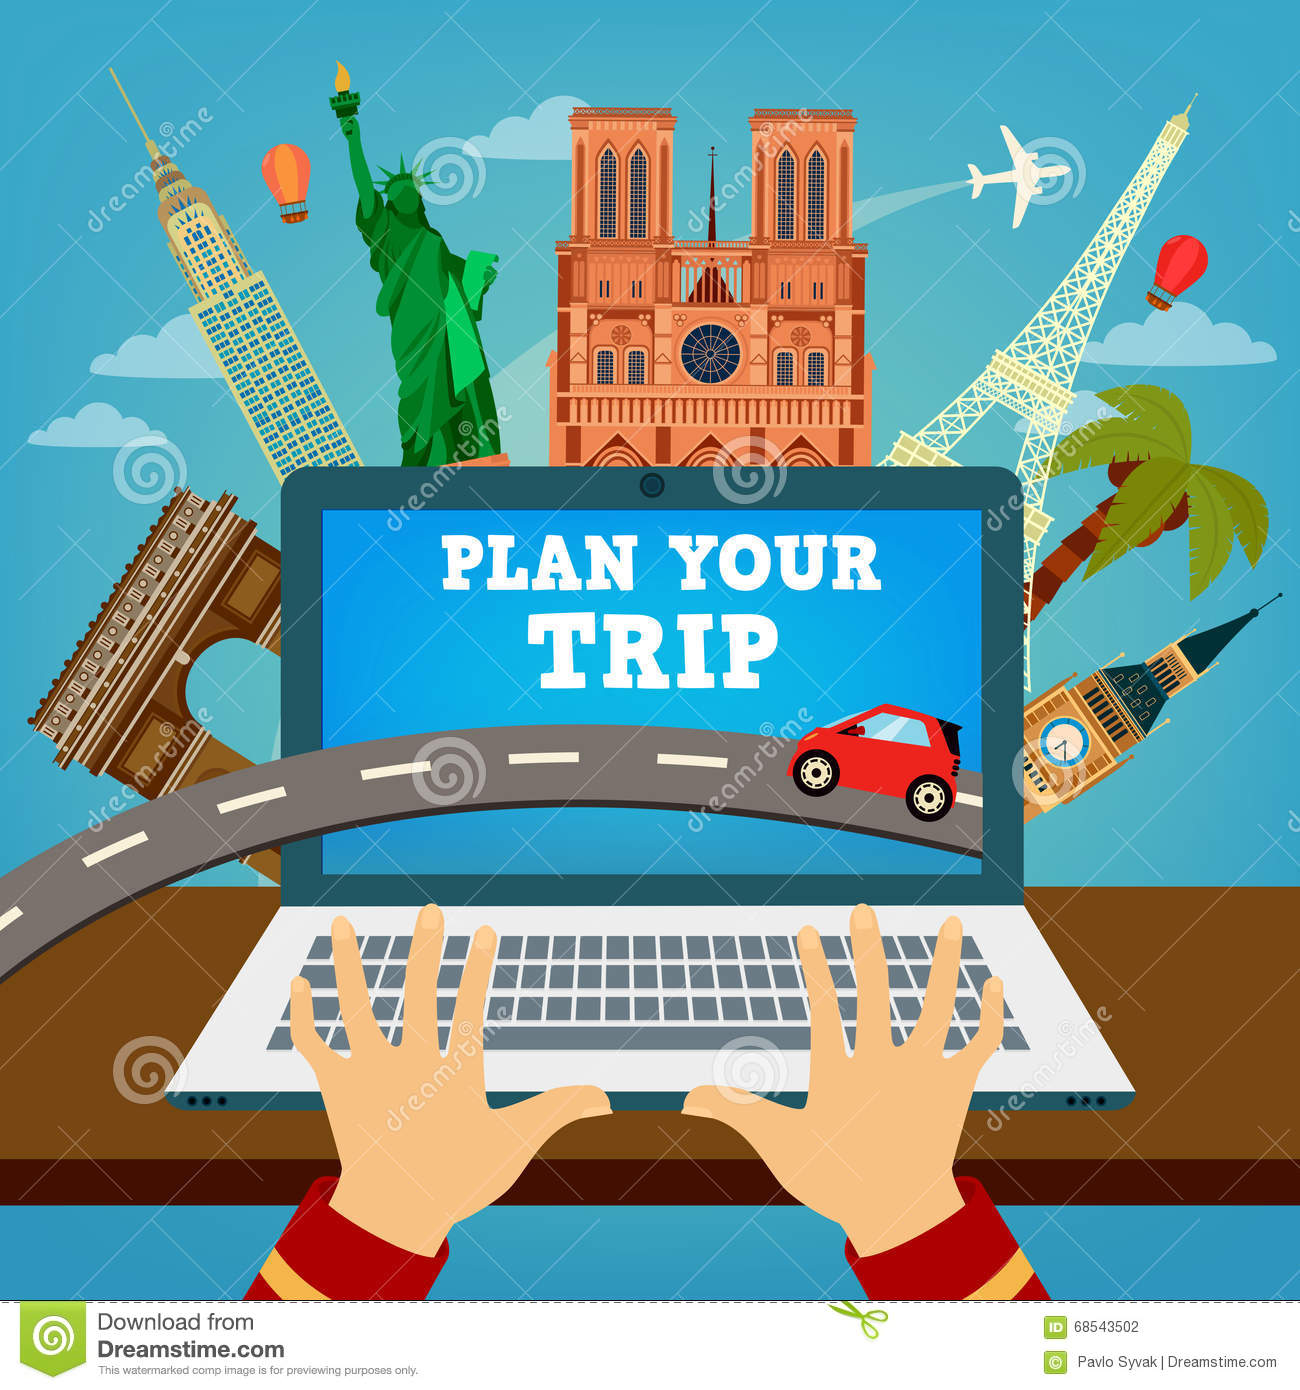 Plan Your Trip Travel Banner Vacation Planning Stock